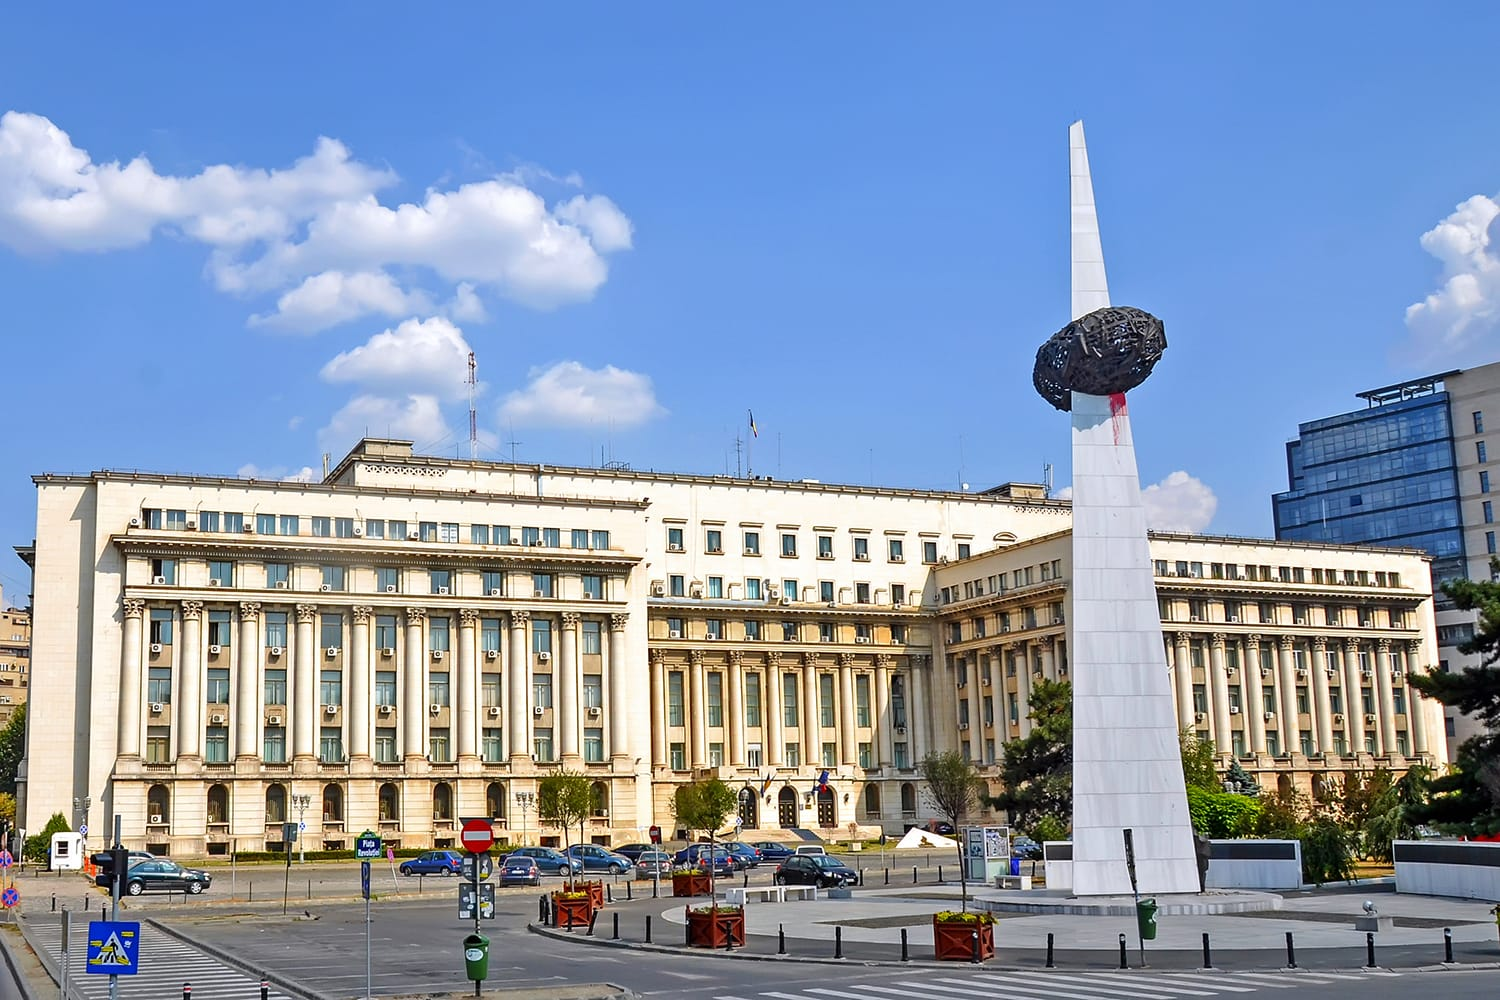 Revolution Square in Bucharest, Romania